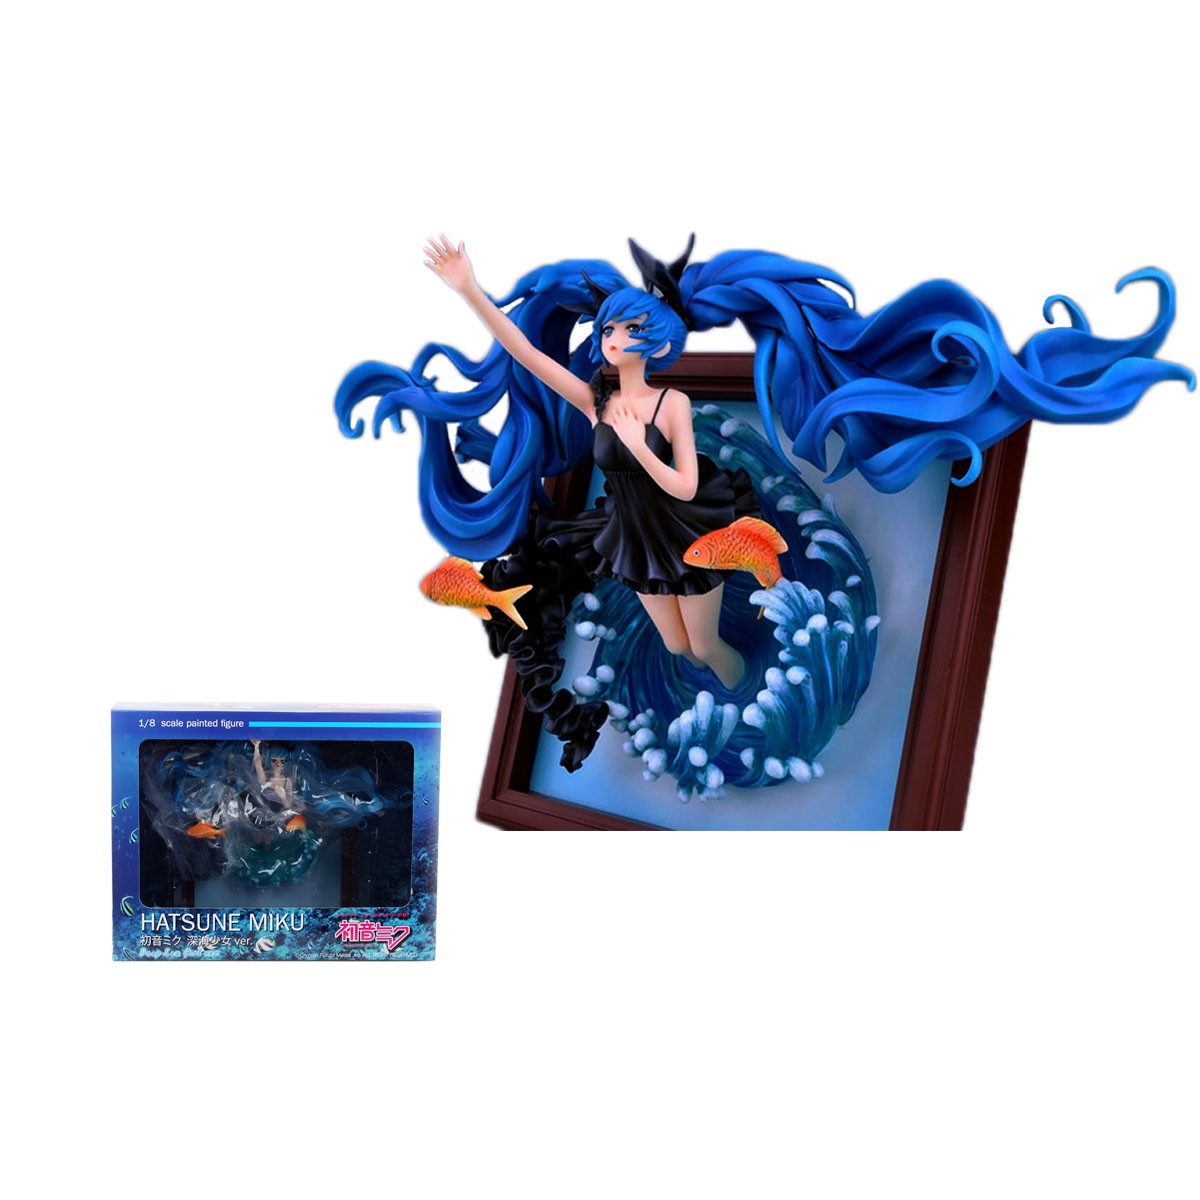 Janpan Vocaloid Hatsune Miku Anime Figure Photo Frame Deep Sea Girl Ver. 1/8 Scale PVC Figure Collection Model Doll Toy 35cm<br><br>Aliexpress